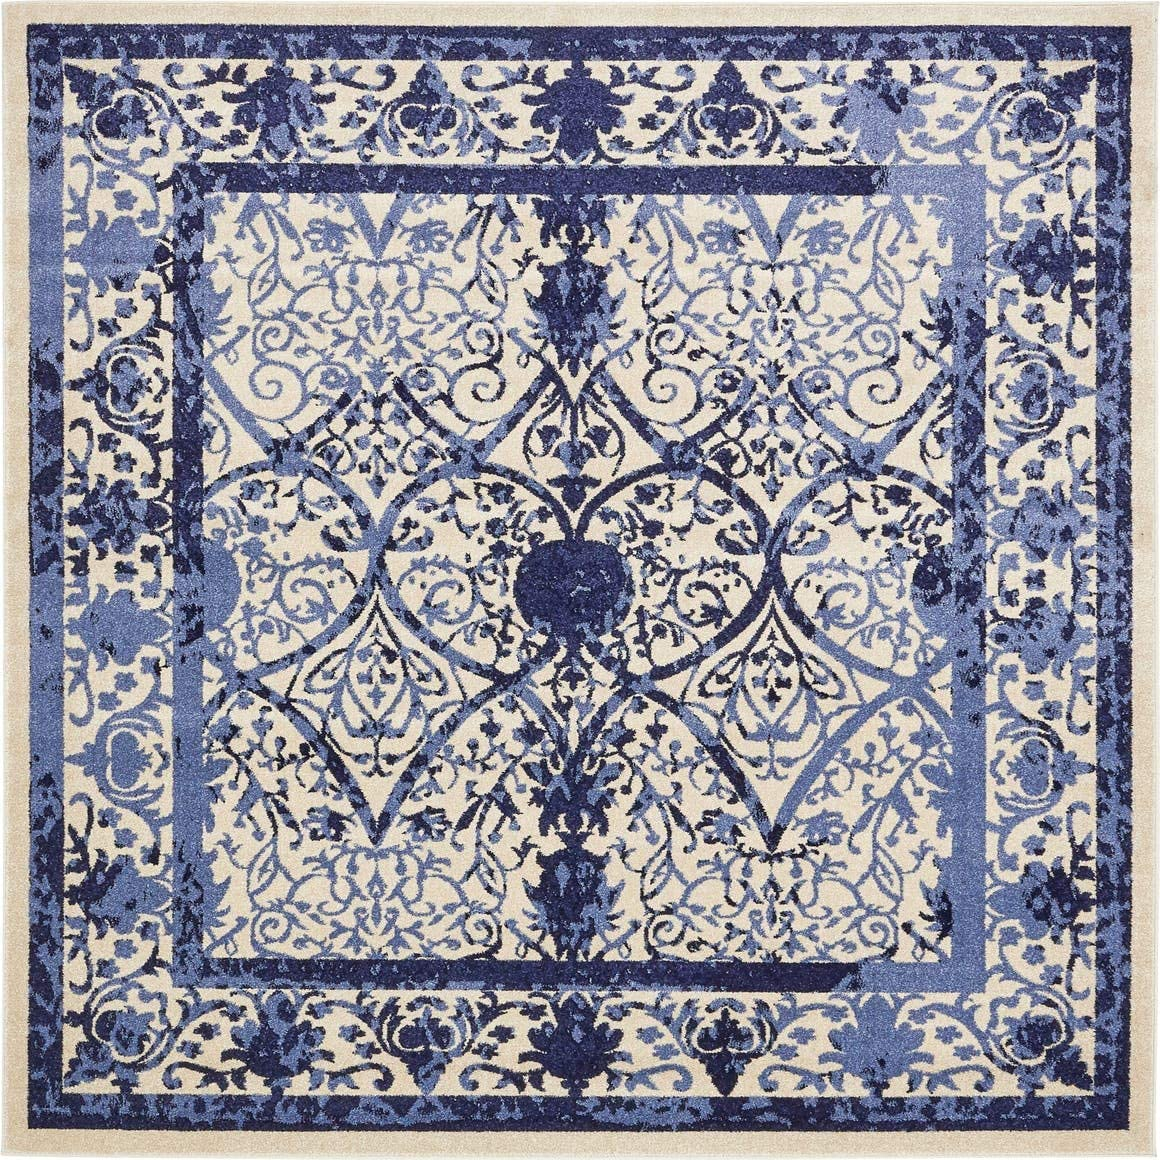 Unique Loom La Jolla Collection Tone-on-Tone Traditional Ivory Blue Square Rug 8 0 x 8 0